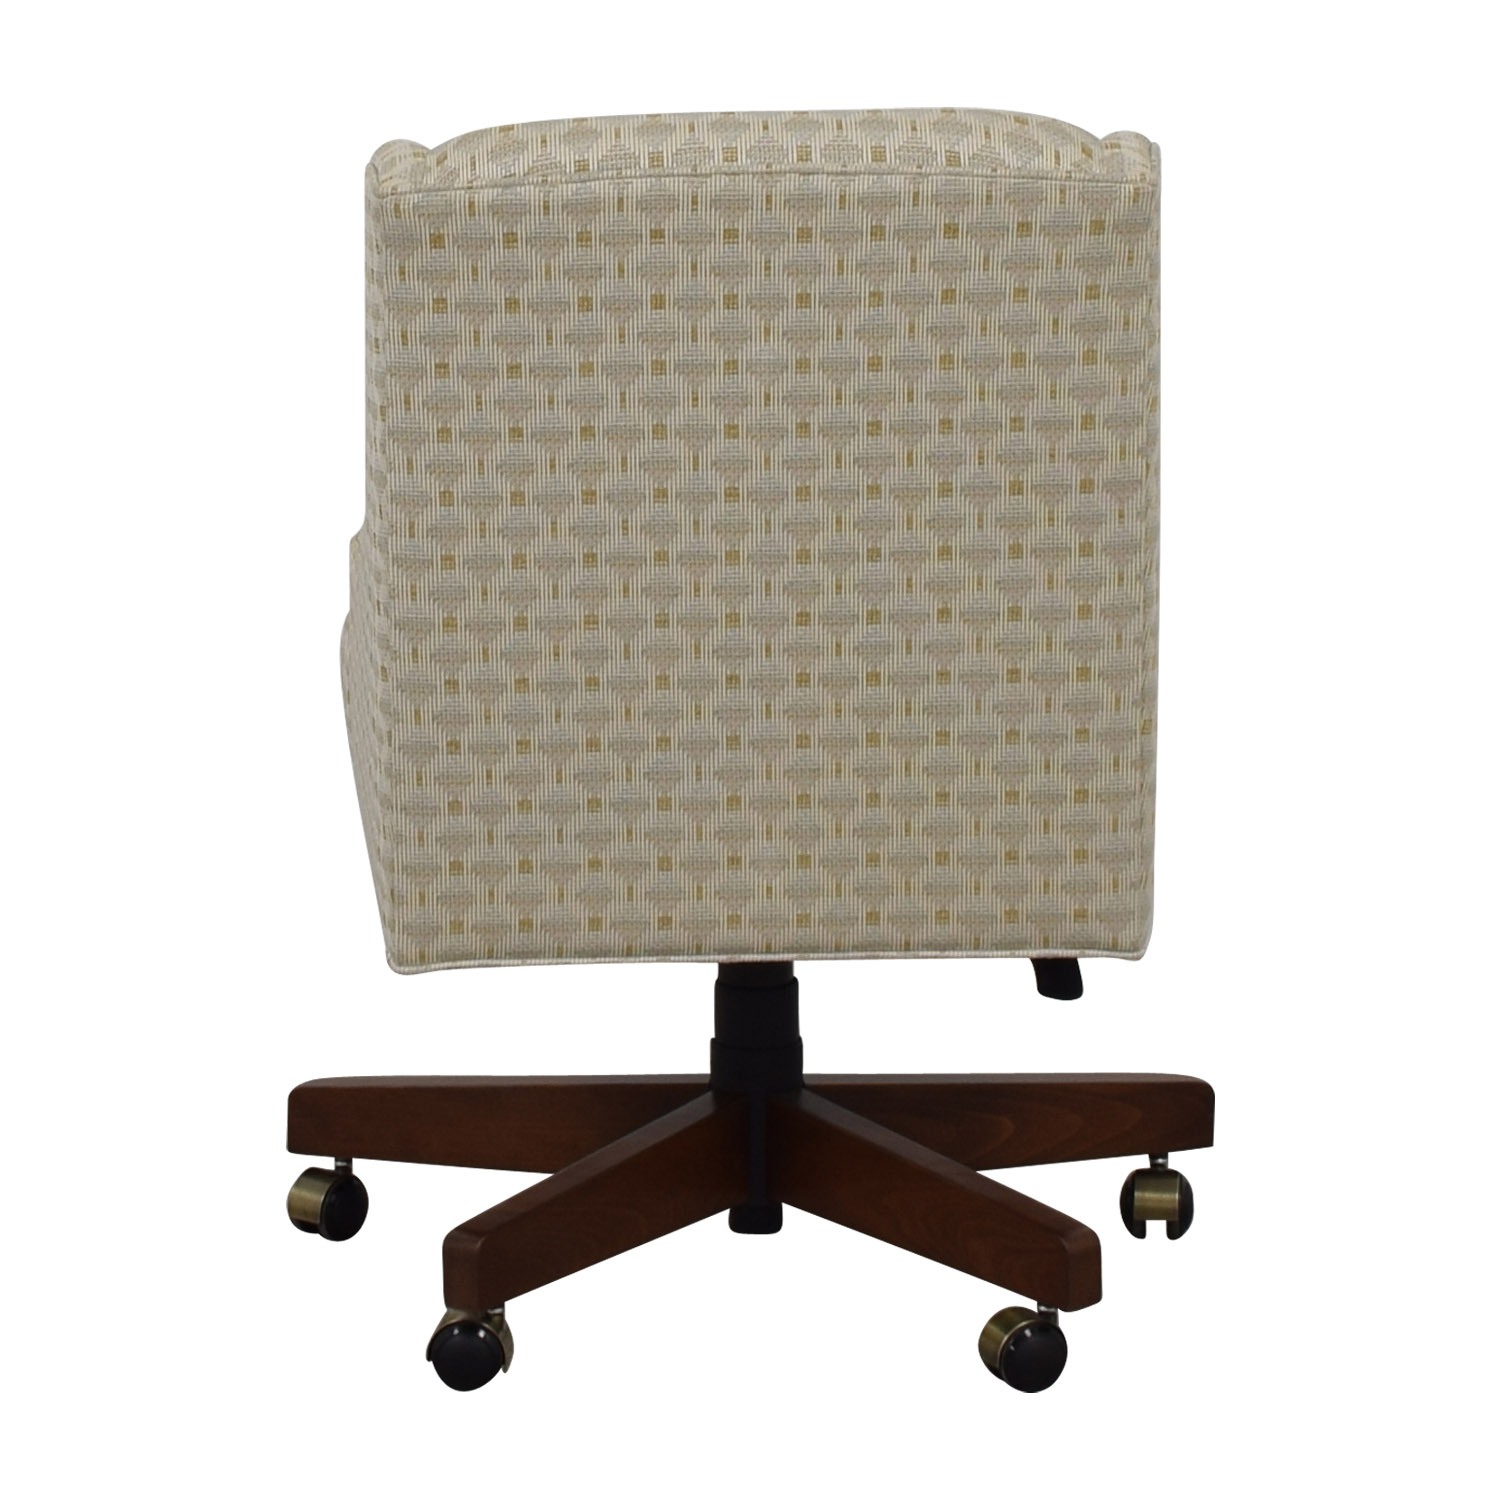 Ethan Allen Beige Upholstered Office Chair on Castors sale